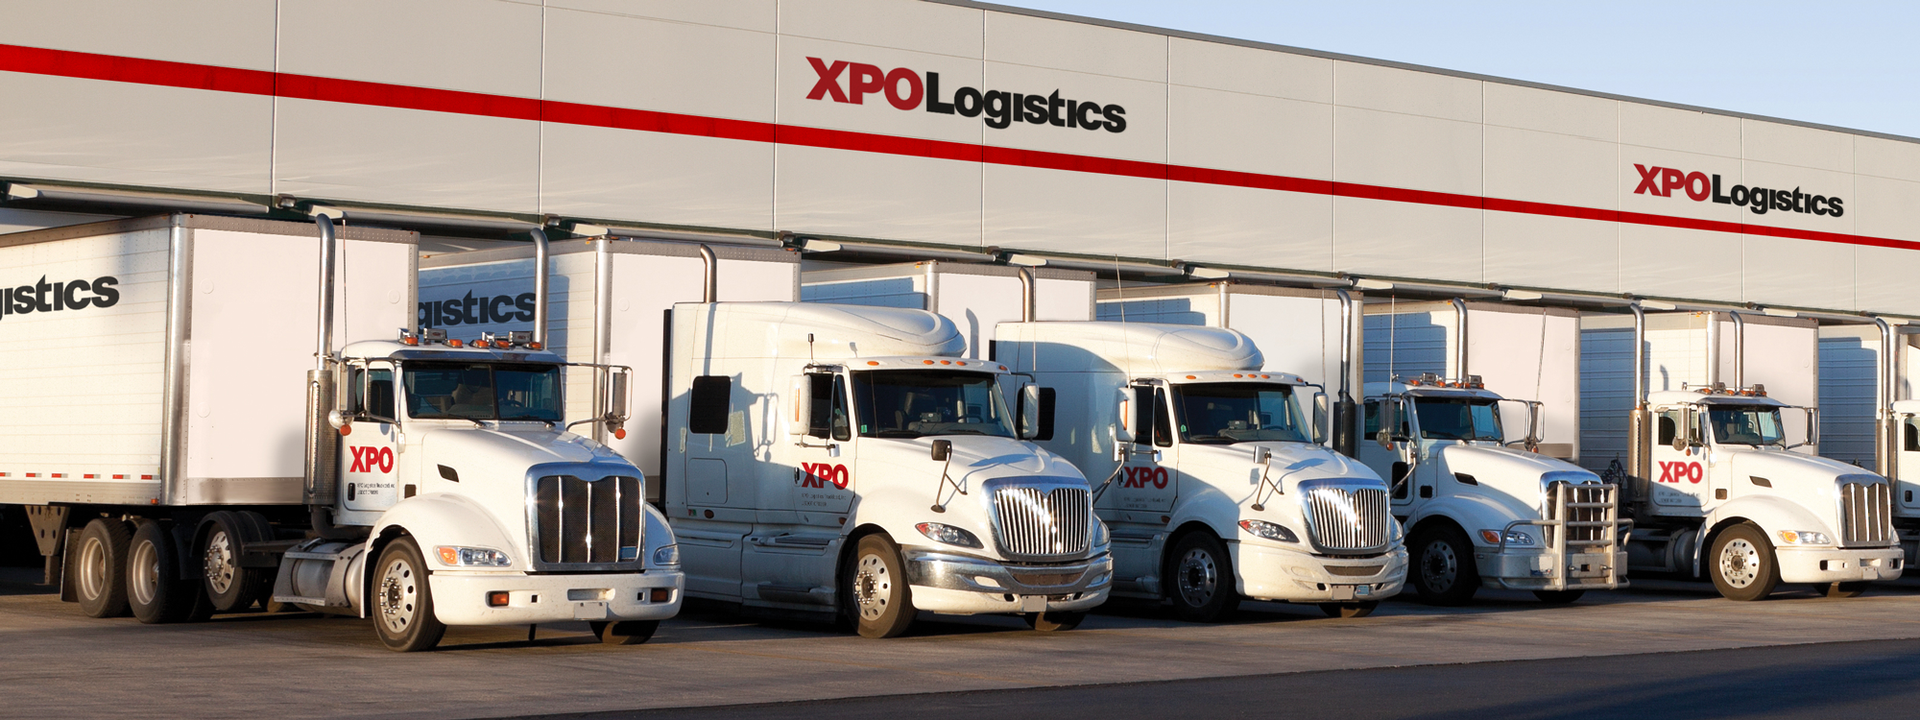 Large distribution center with XPO trucks.